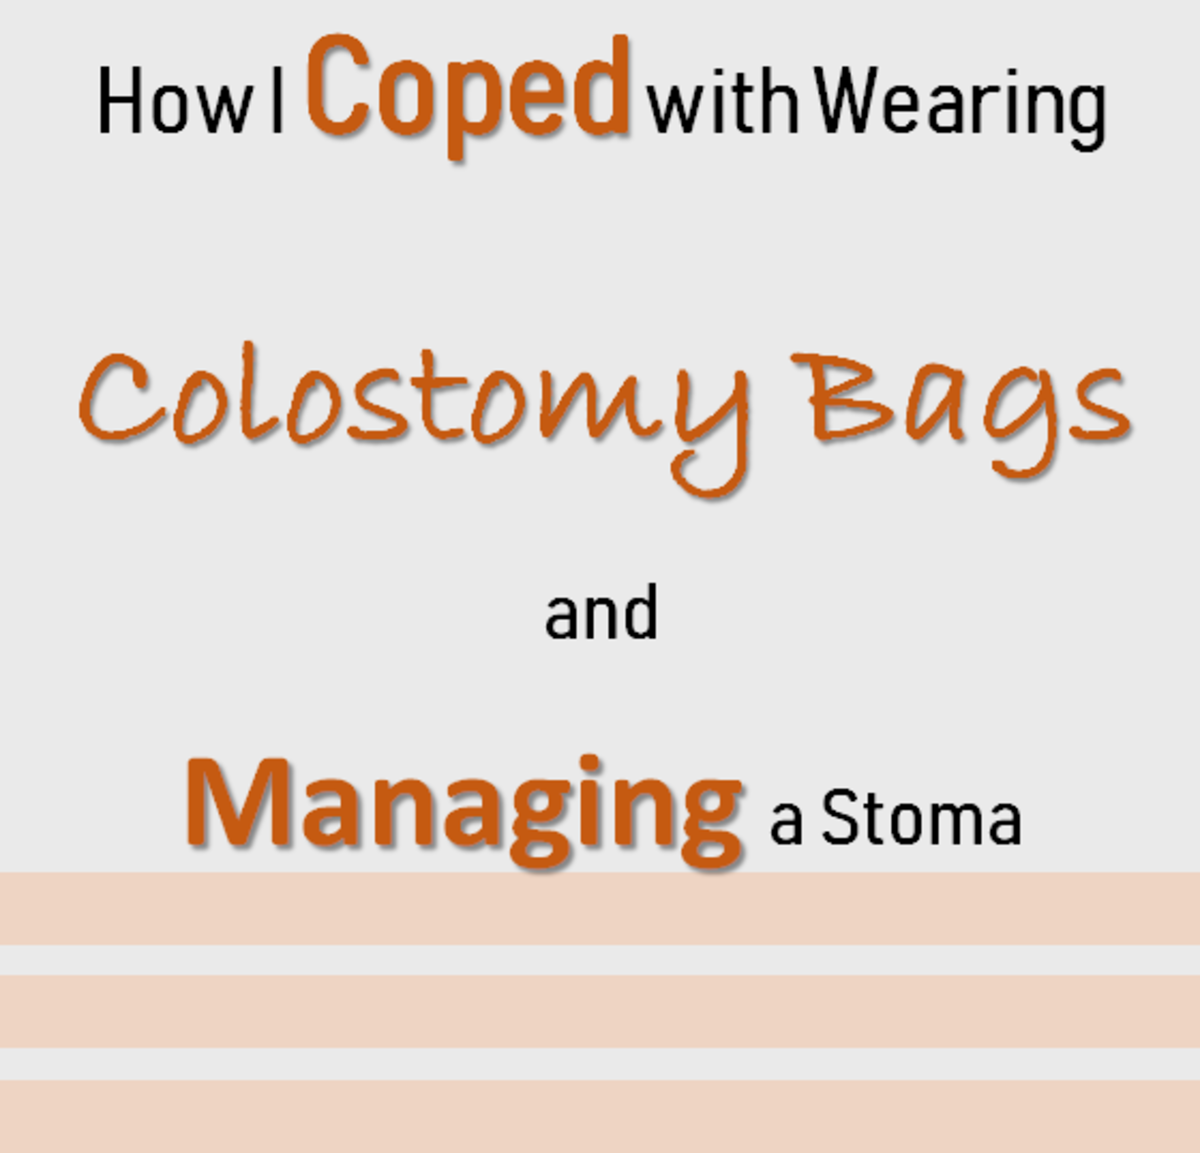 How I Coped with Wearing Colostomy Bags